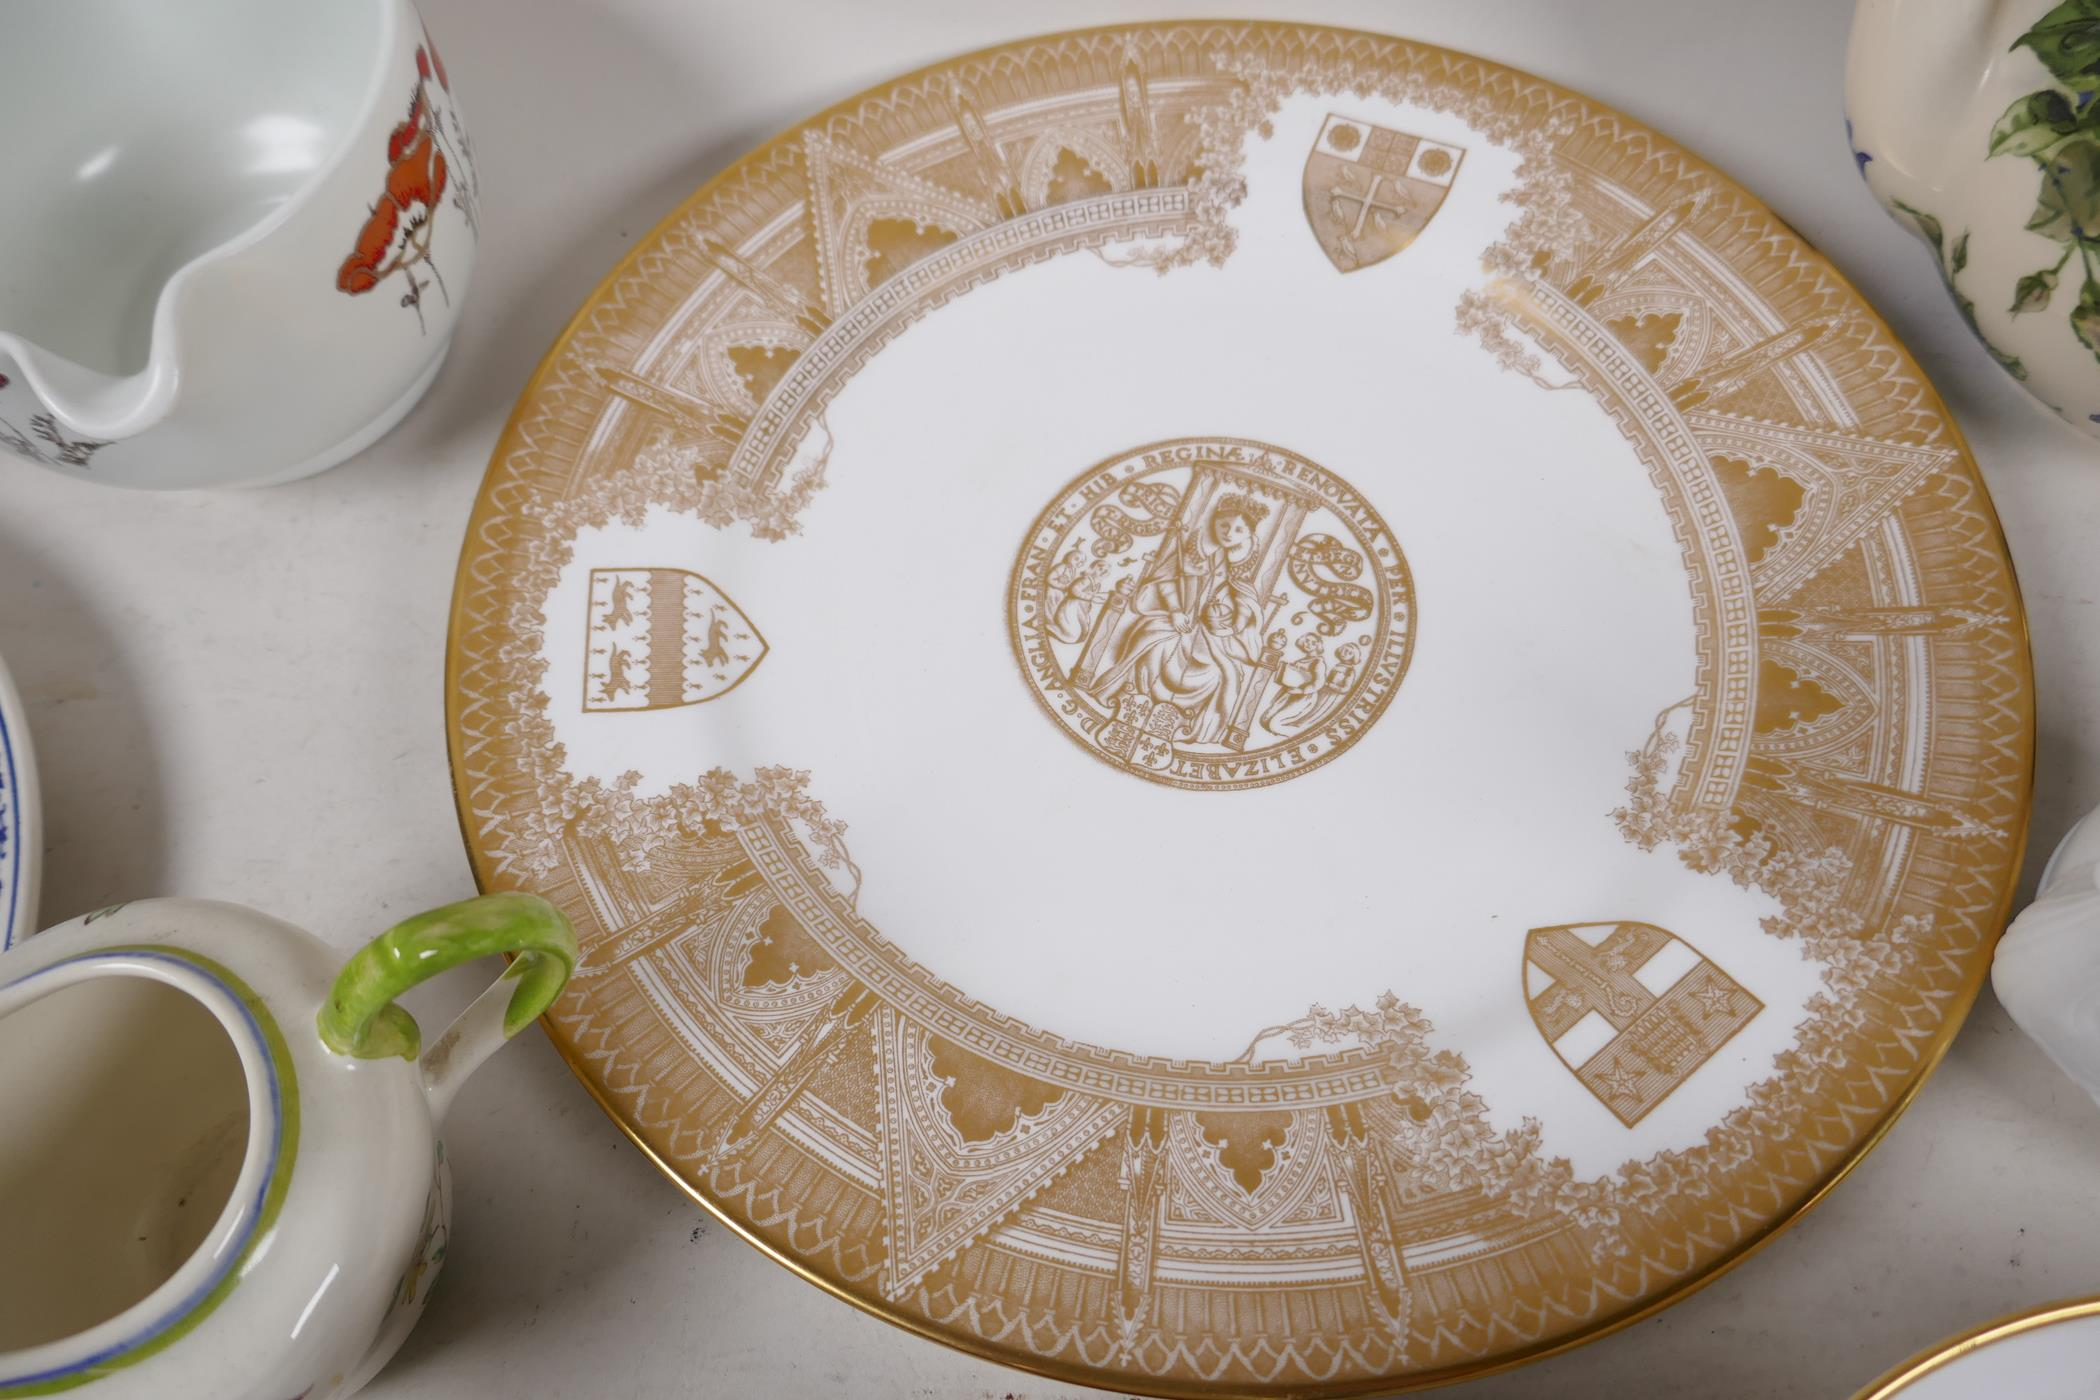 A quantity of decorative pottery and porcelain to include Royal Doulton, Wedgwood, Spode etc - Image 4 of 6